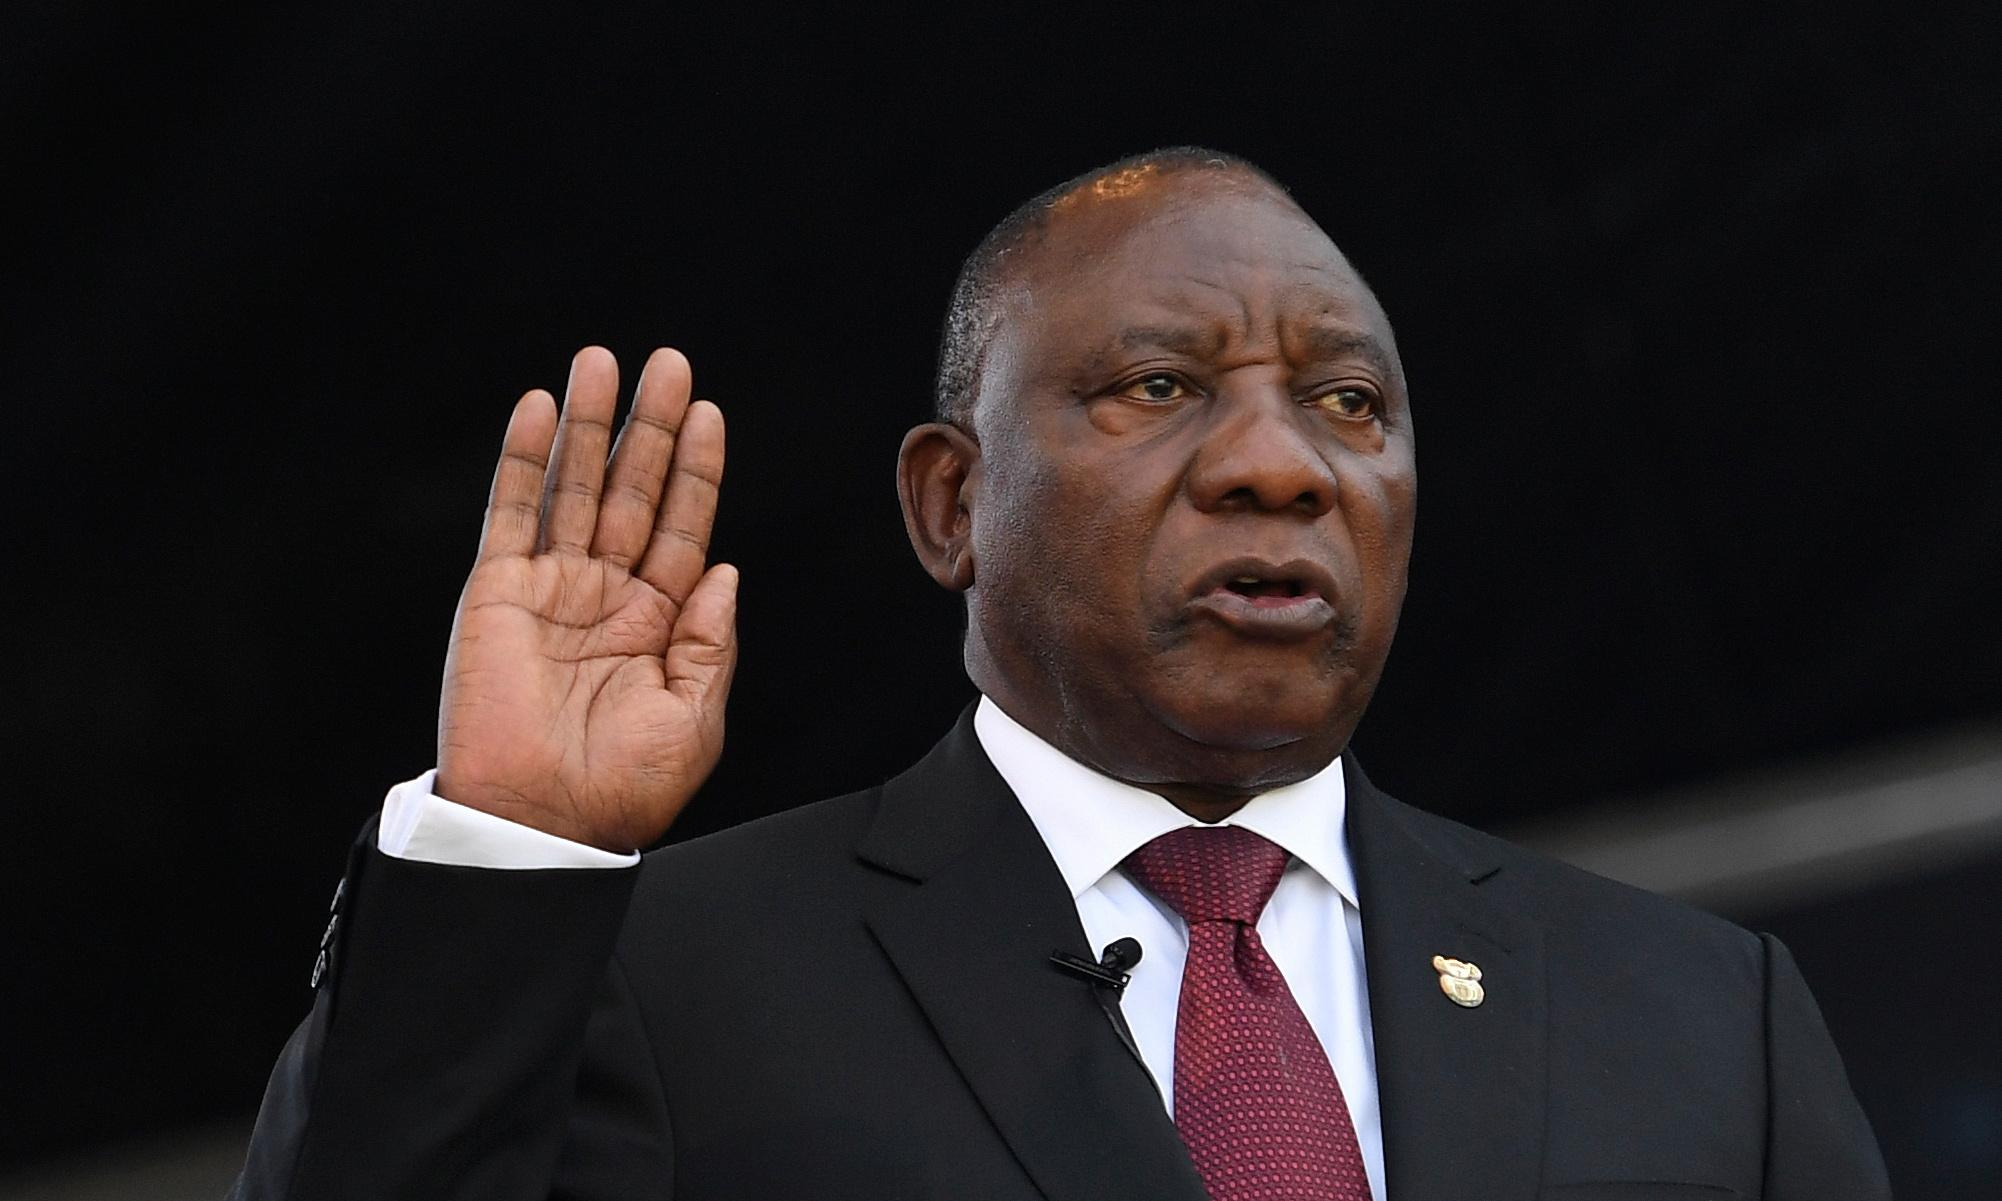 Cyril Ramaphosa is cautious, but he must waste no time reforming South Africa